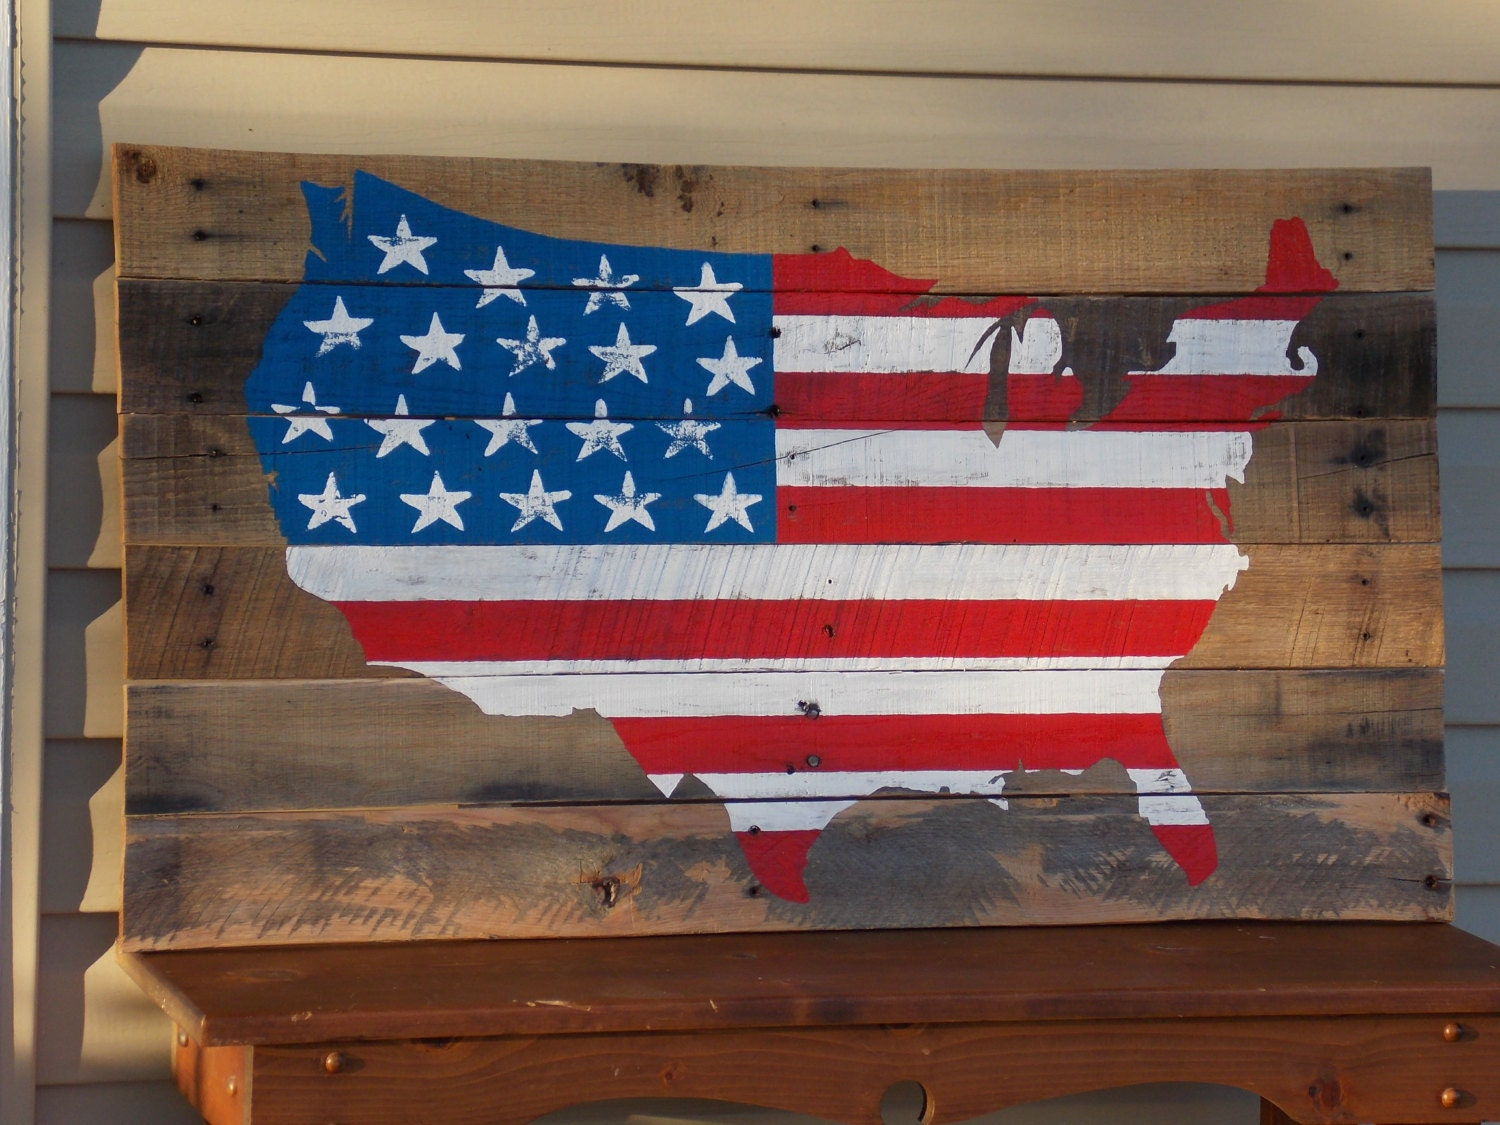 American flag on wood united states of america 3ft unique - American flag pallet art ...